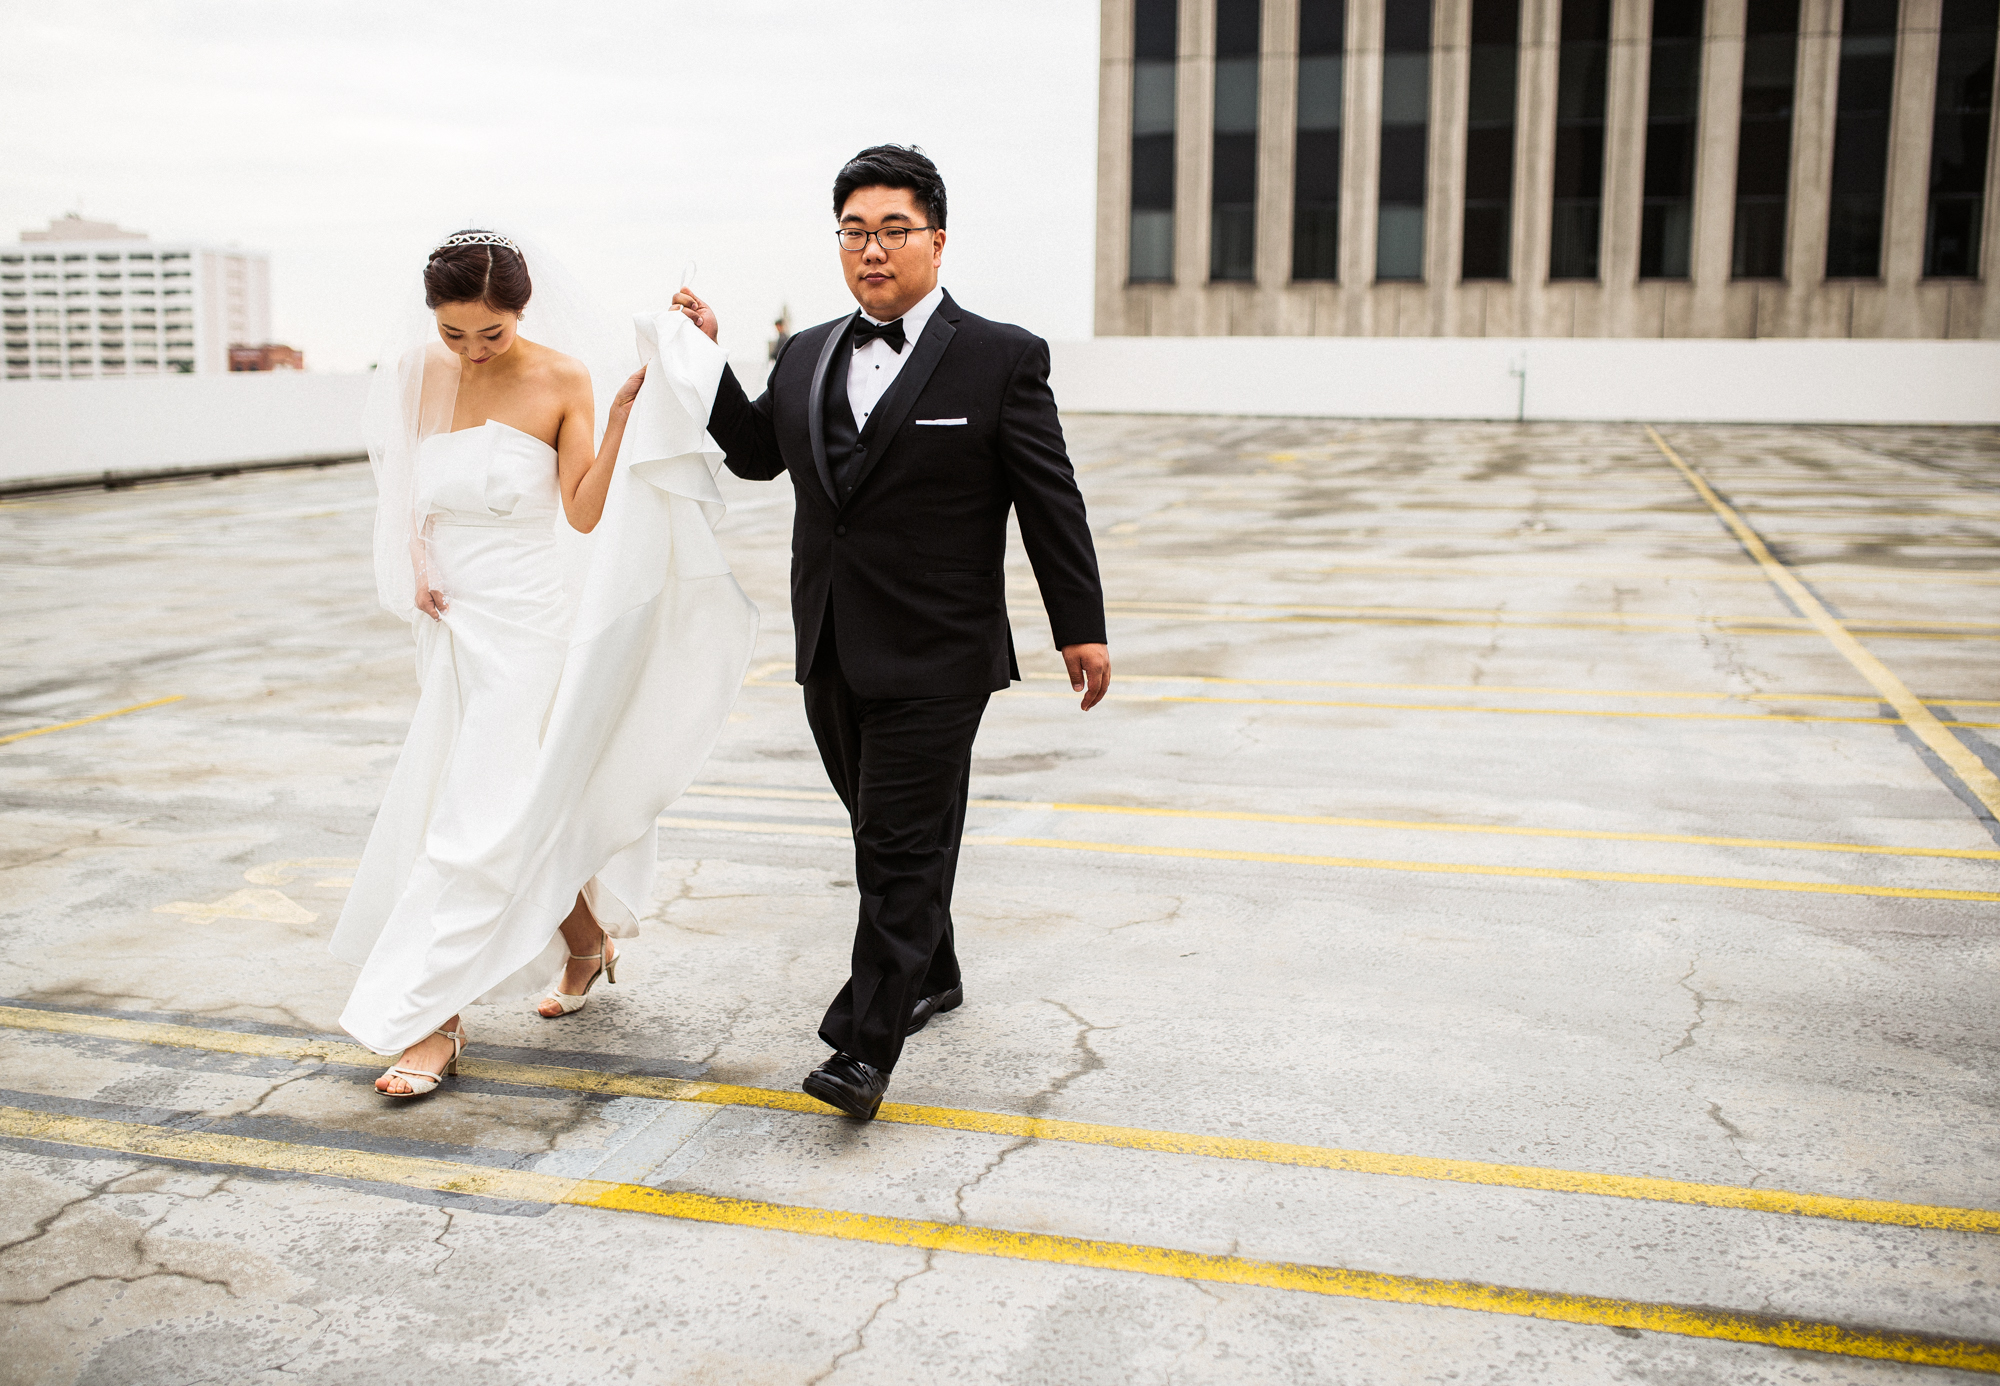 ©Isaiah & Taylor Photography - Destination Wedding Photographers - Downtown Los Angeles Parking Lot Rooftop Wedding-011.jpg